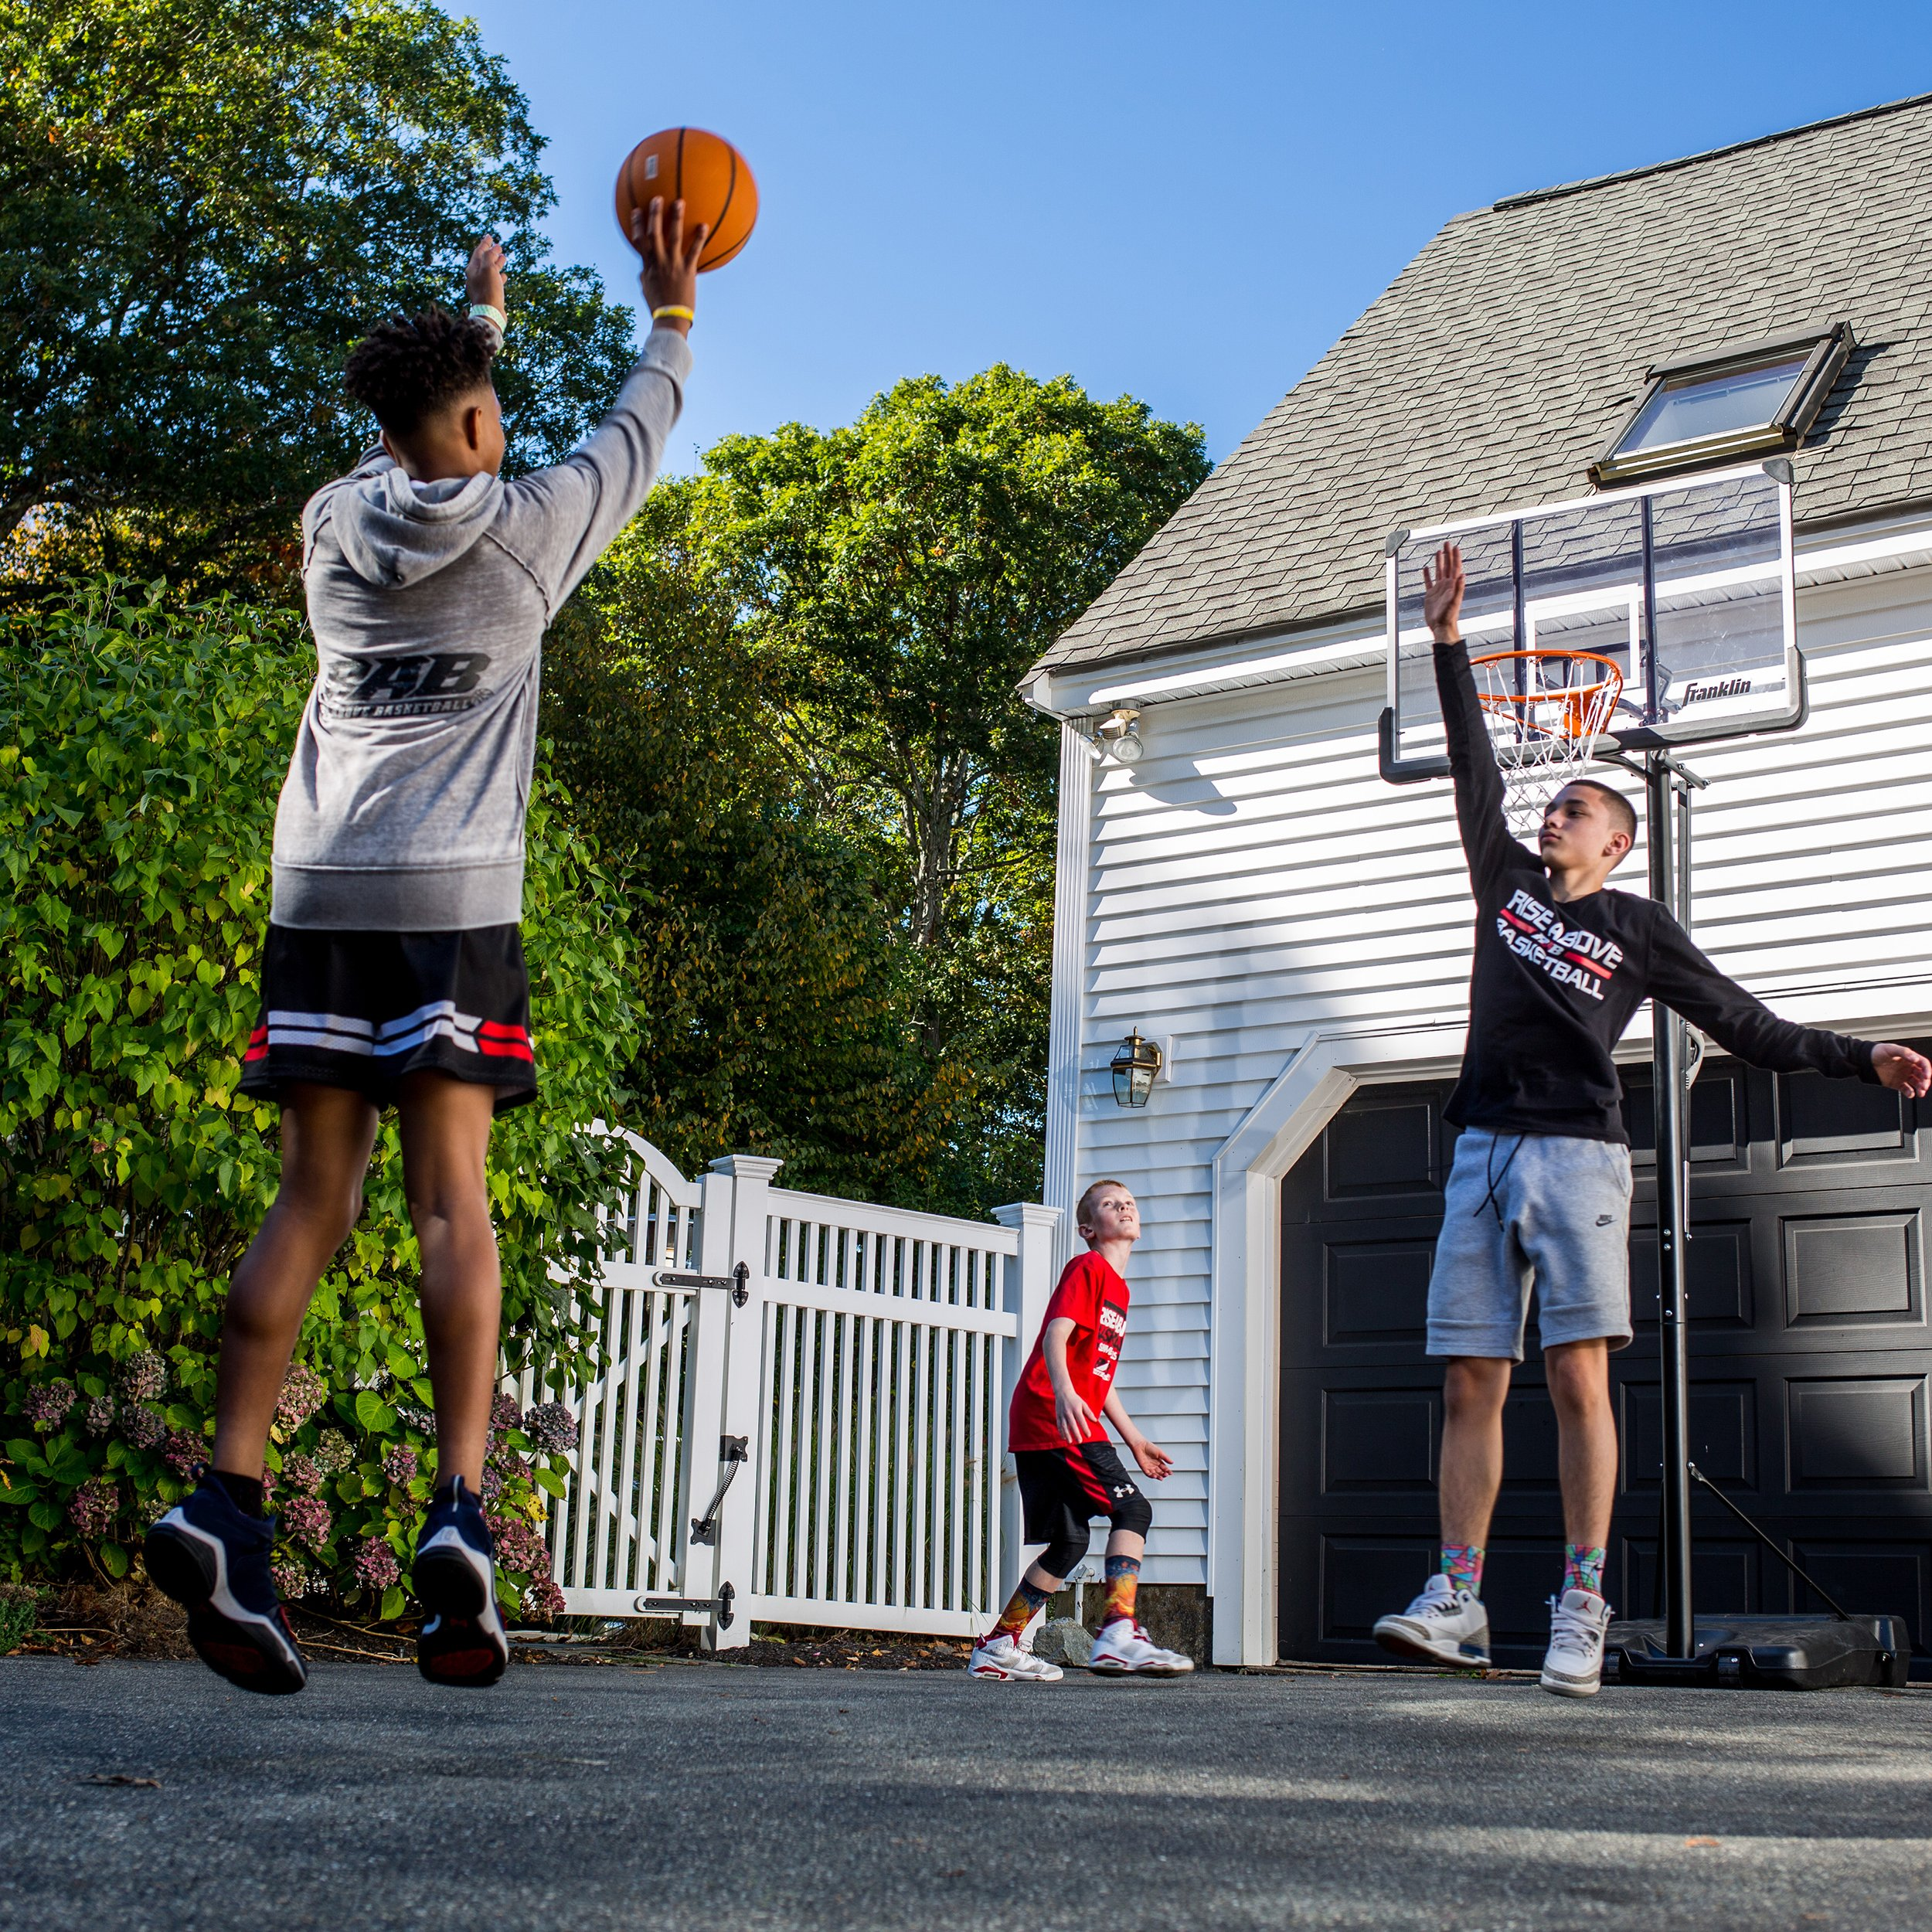 Franklin Sports Portable Basketball Hoop – Authentic Street Basketball Hoop for Adults and Kids – Adjustable Basketball Hoop with Rolling Mechanism – Play Basketball in Your Driveway by Franklin Sports (Image #6)